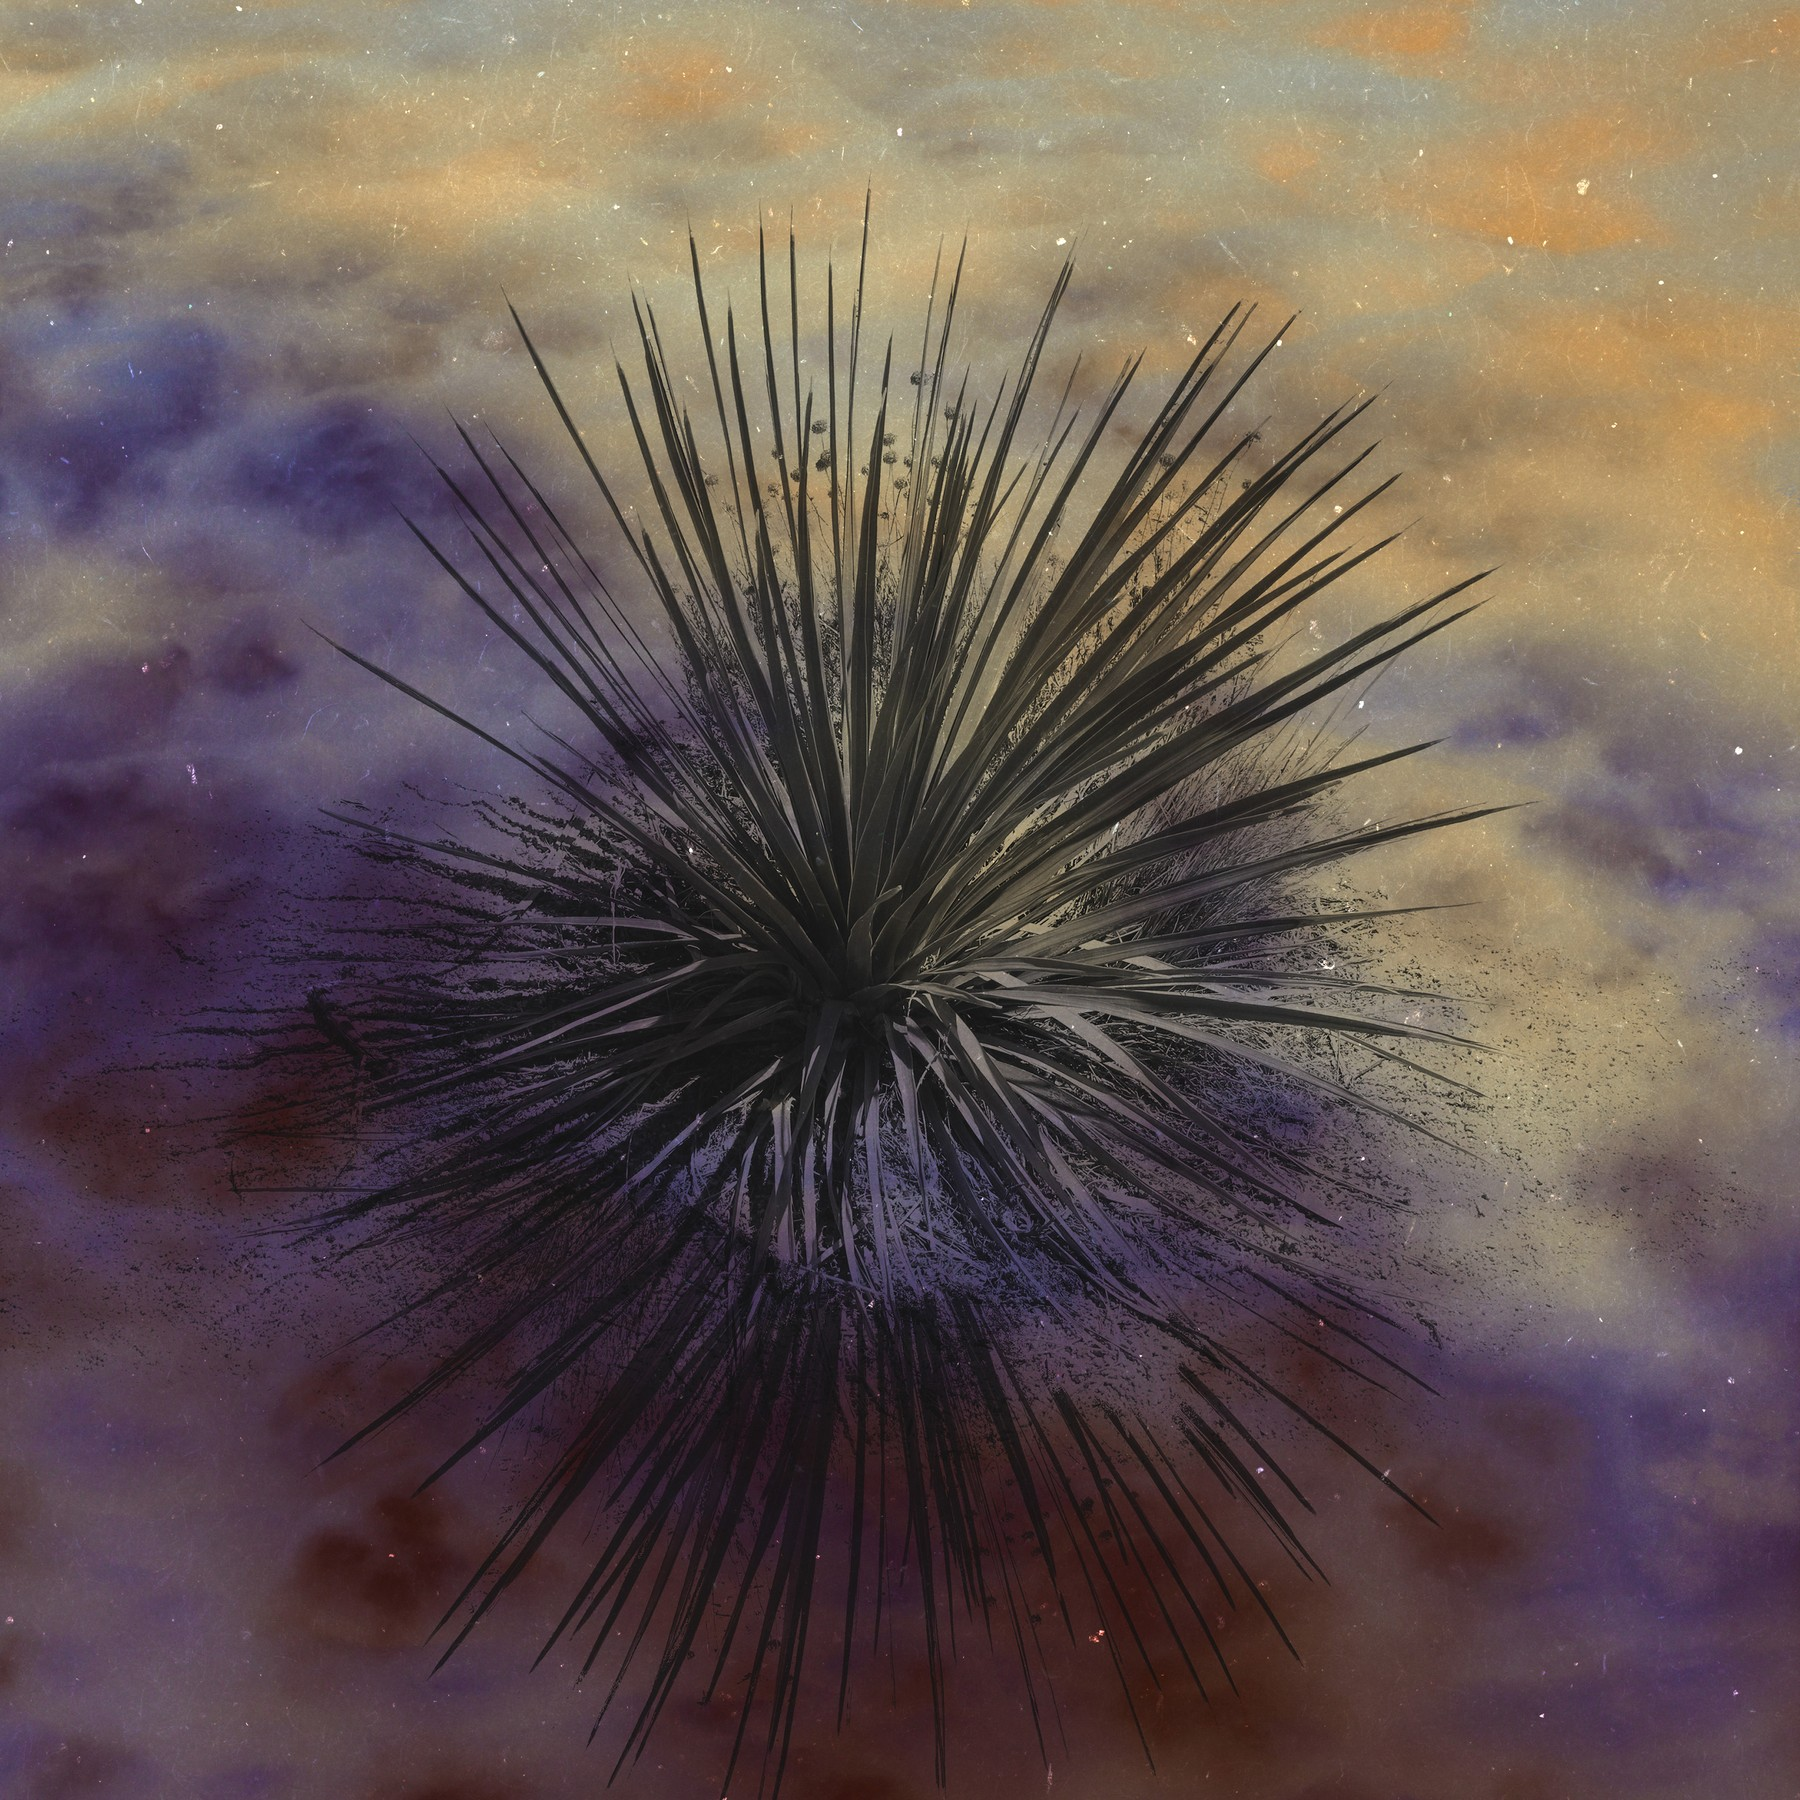 Universe for a Palm Tree